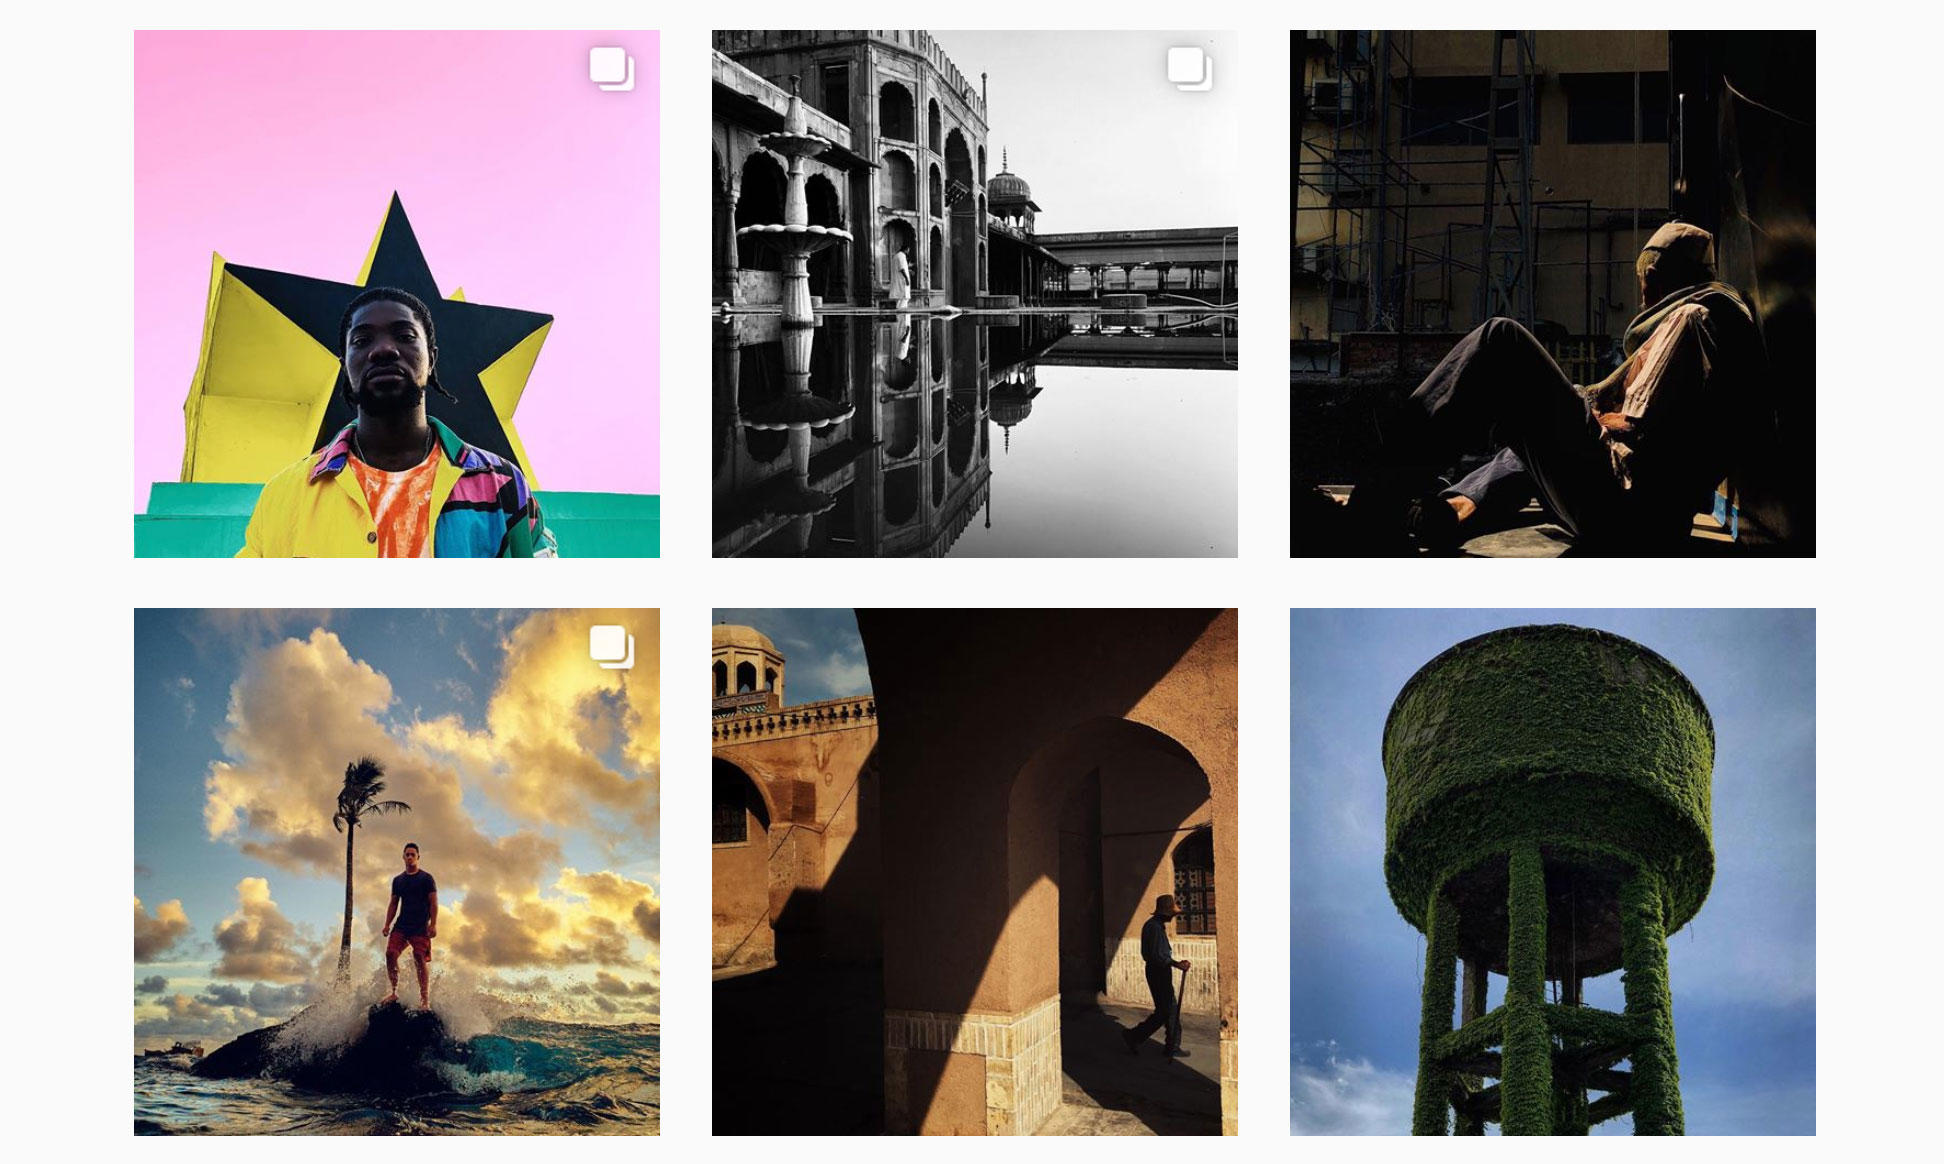 Apple for years has publicized the creative possibilities of its smartphones with the #ShotOniPhone hashtag, here used on the company's Instagram page.